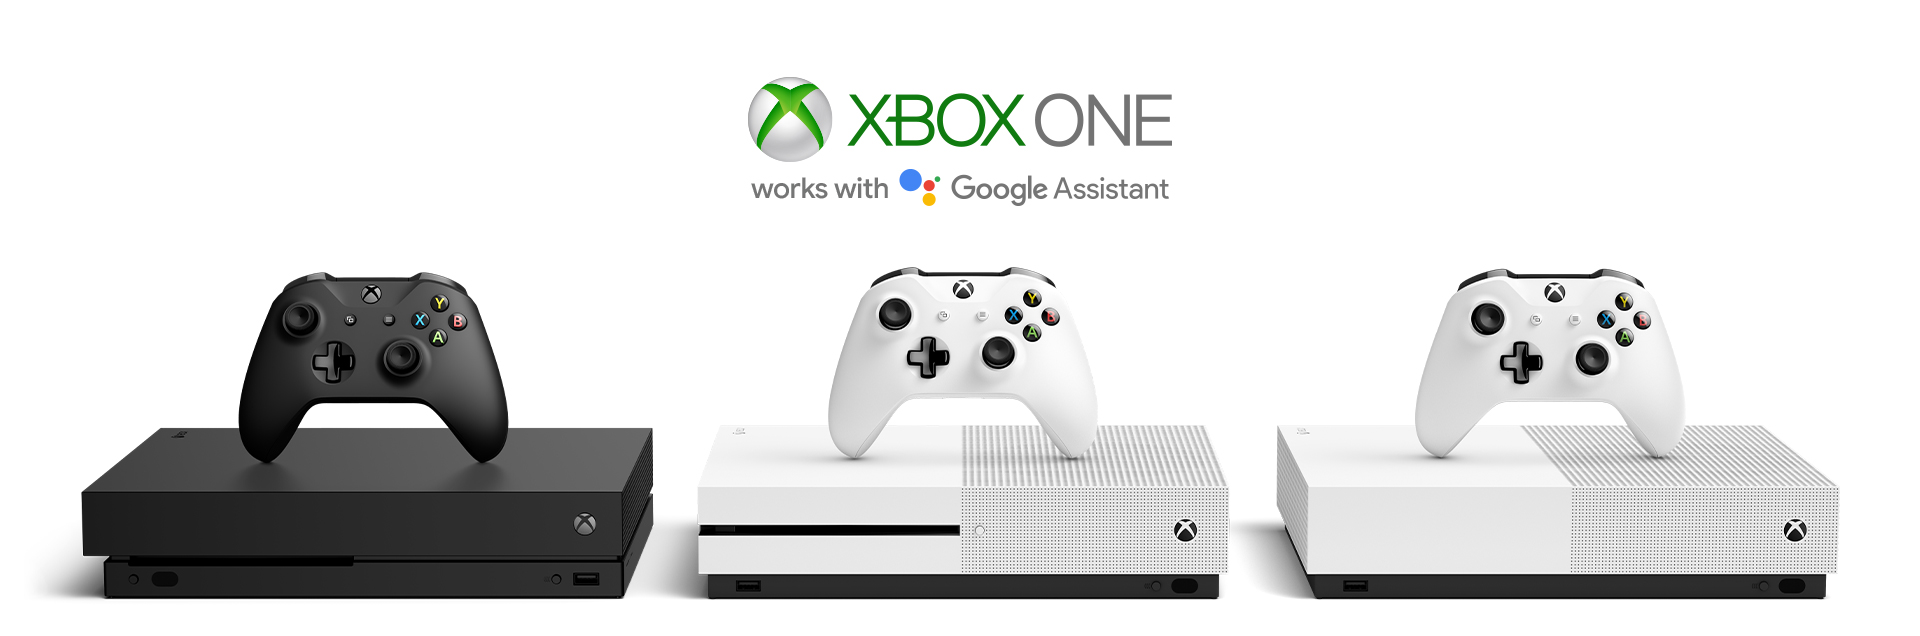 The Xbox One family of consoles underneath the Xbox One and Google Assistant logos.